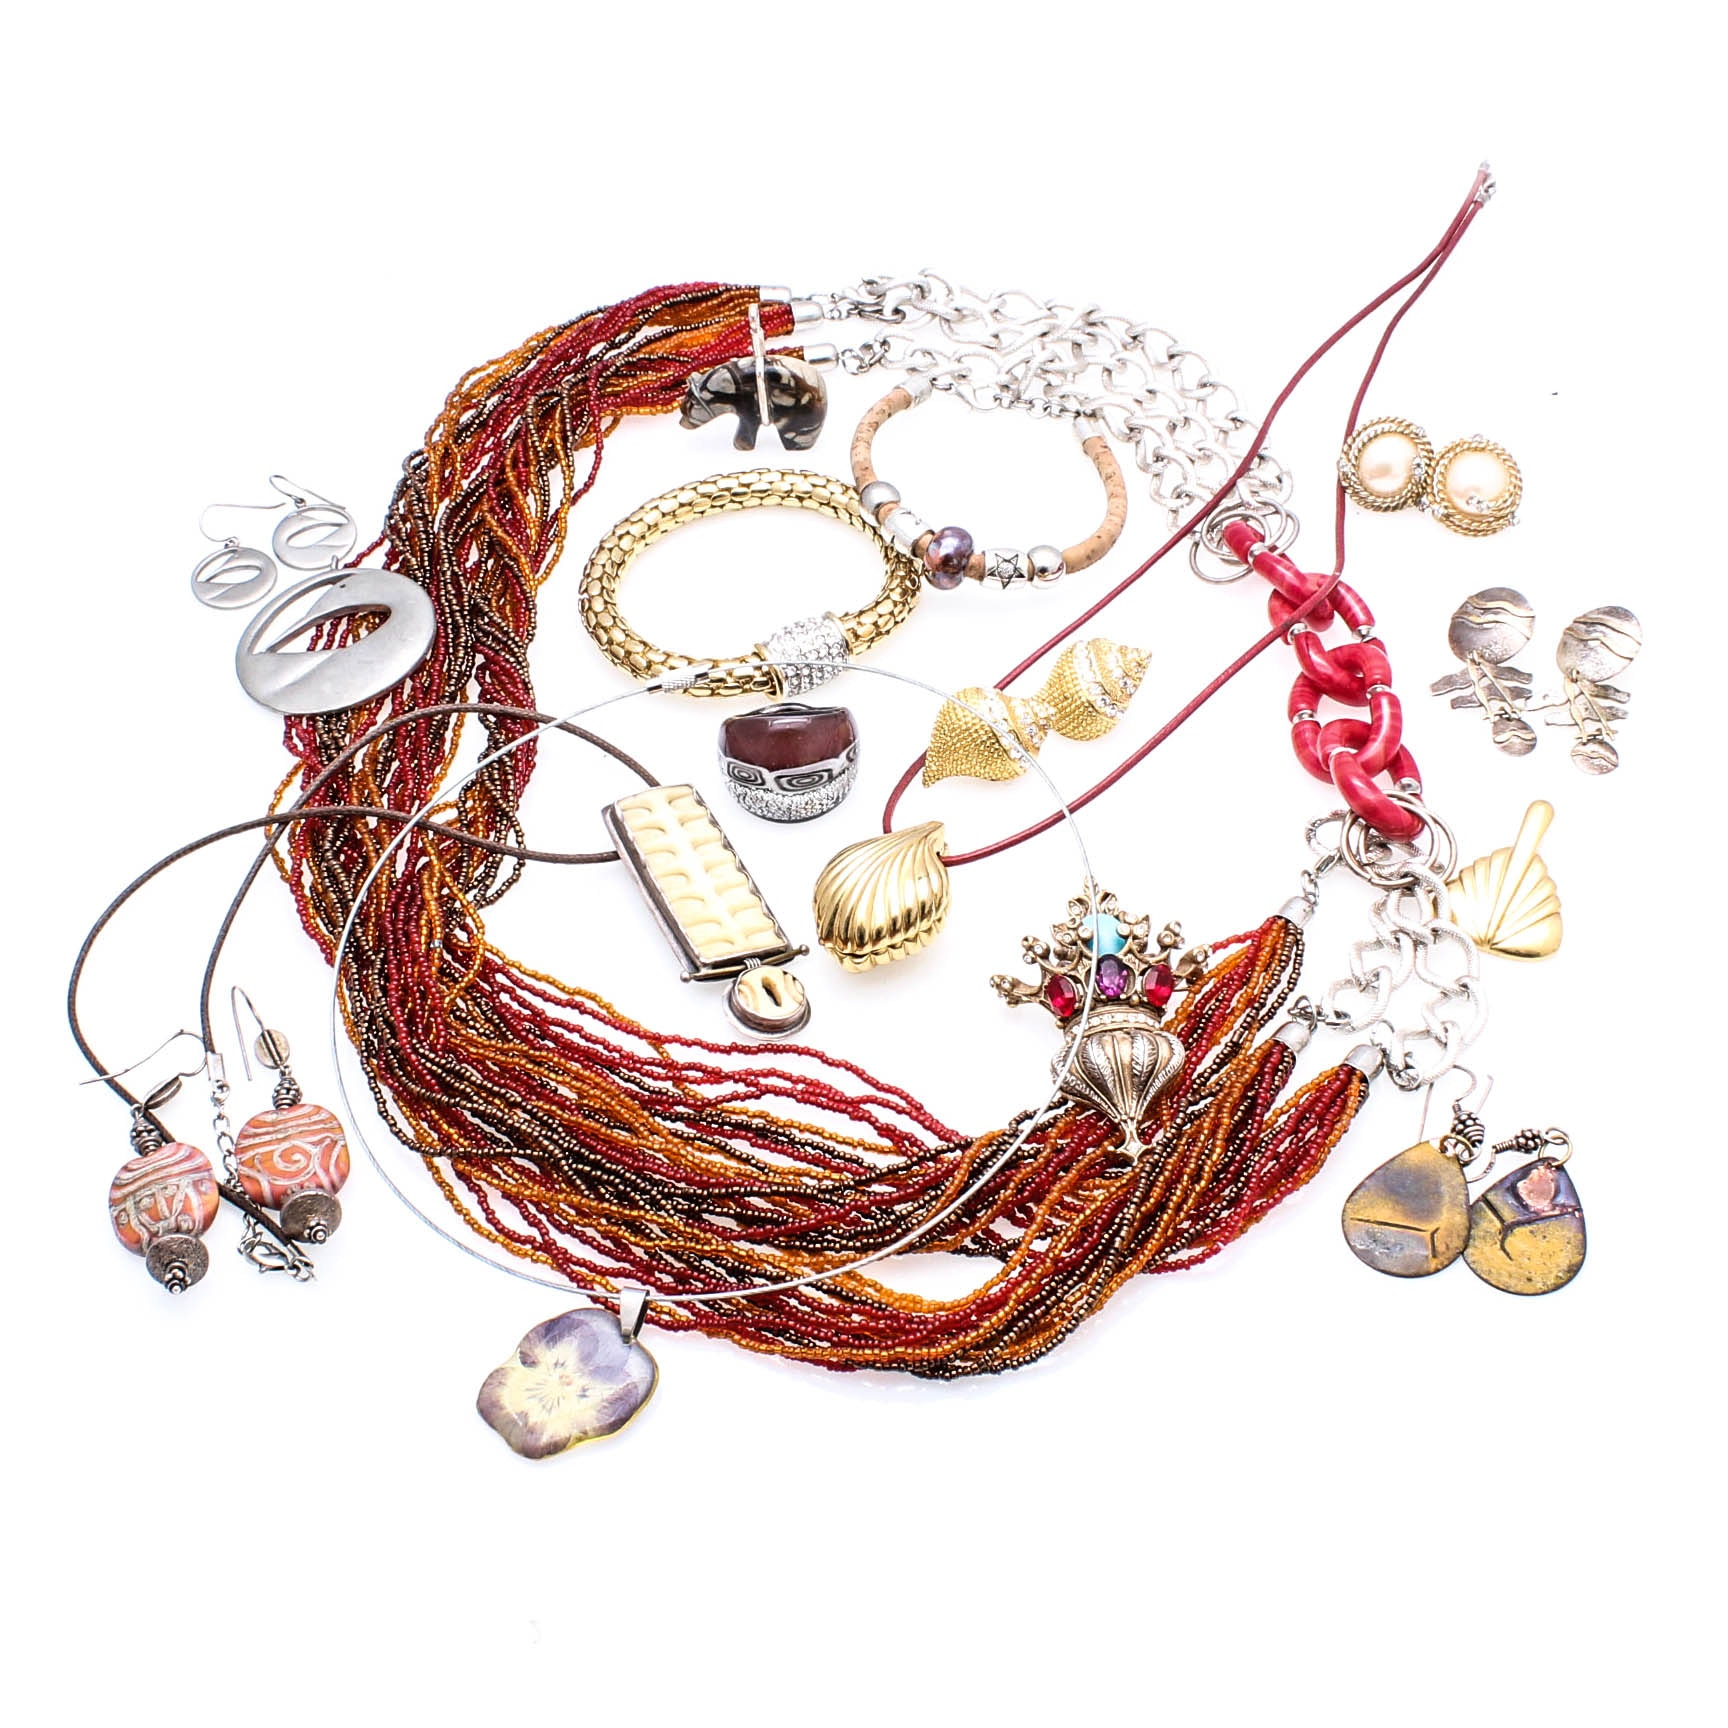 Costume Jewelry Including Joan Rivers, Monet and More